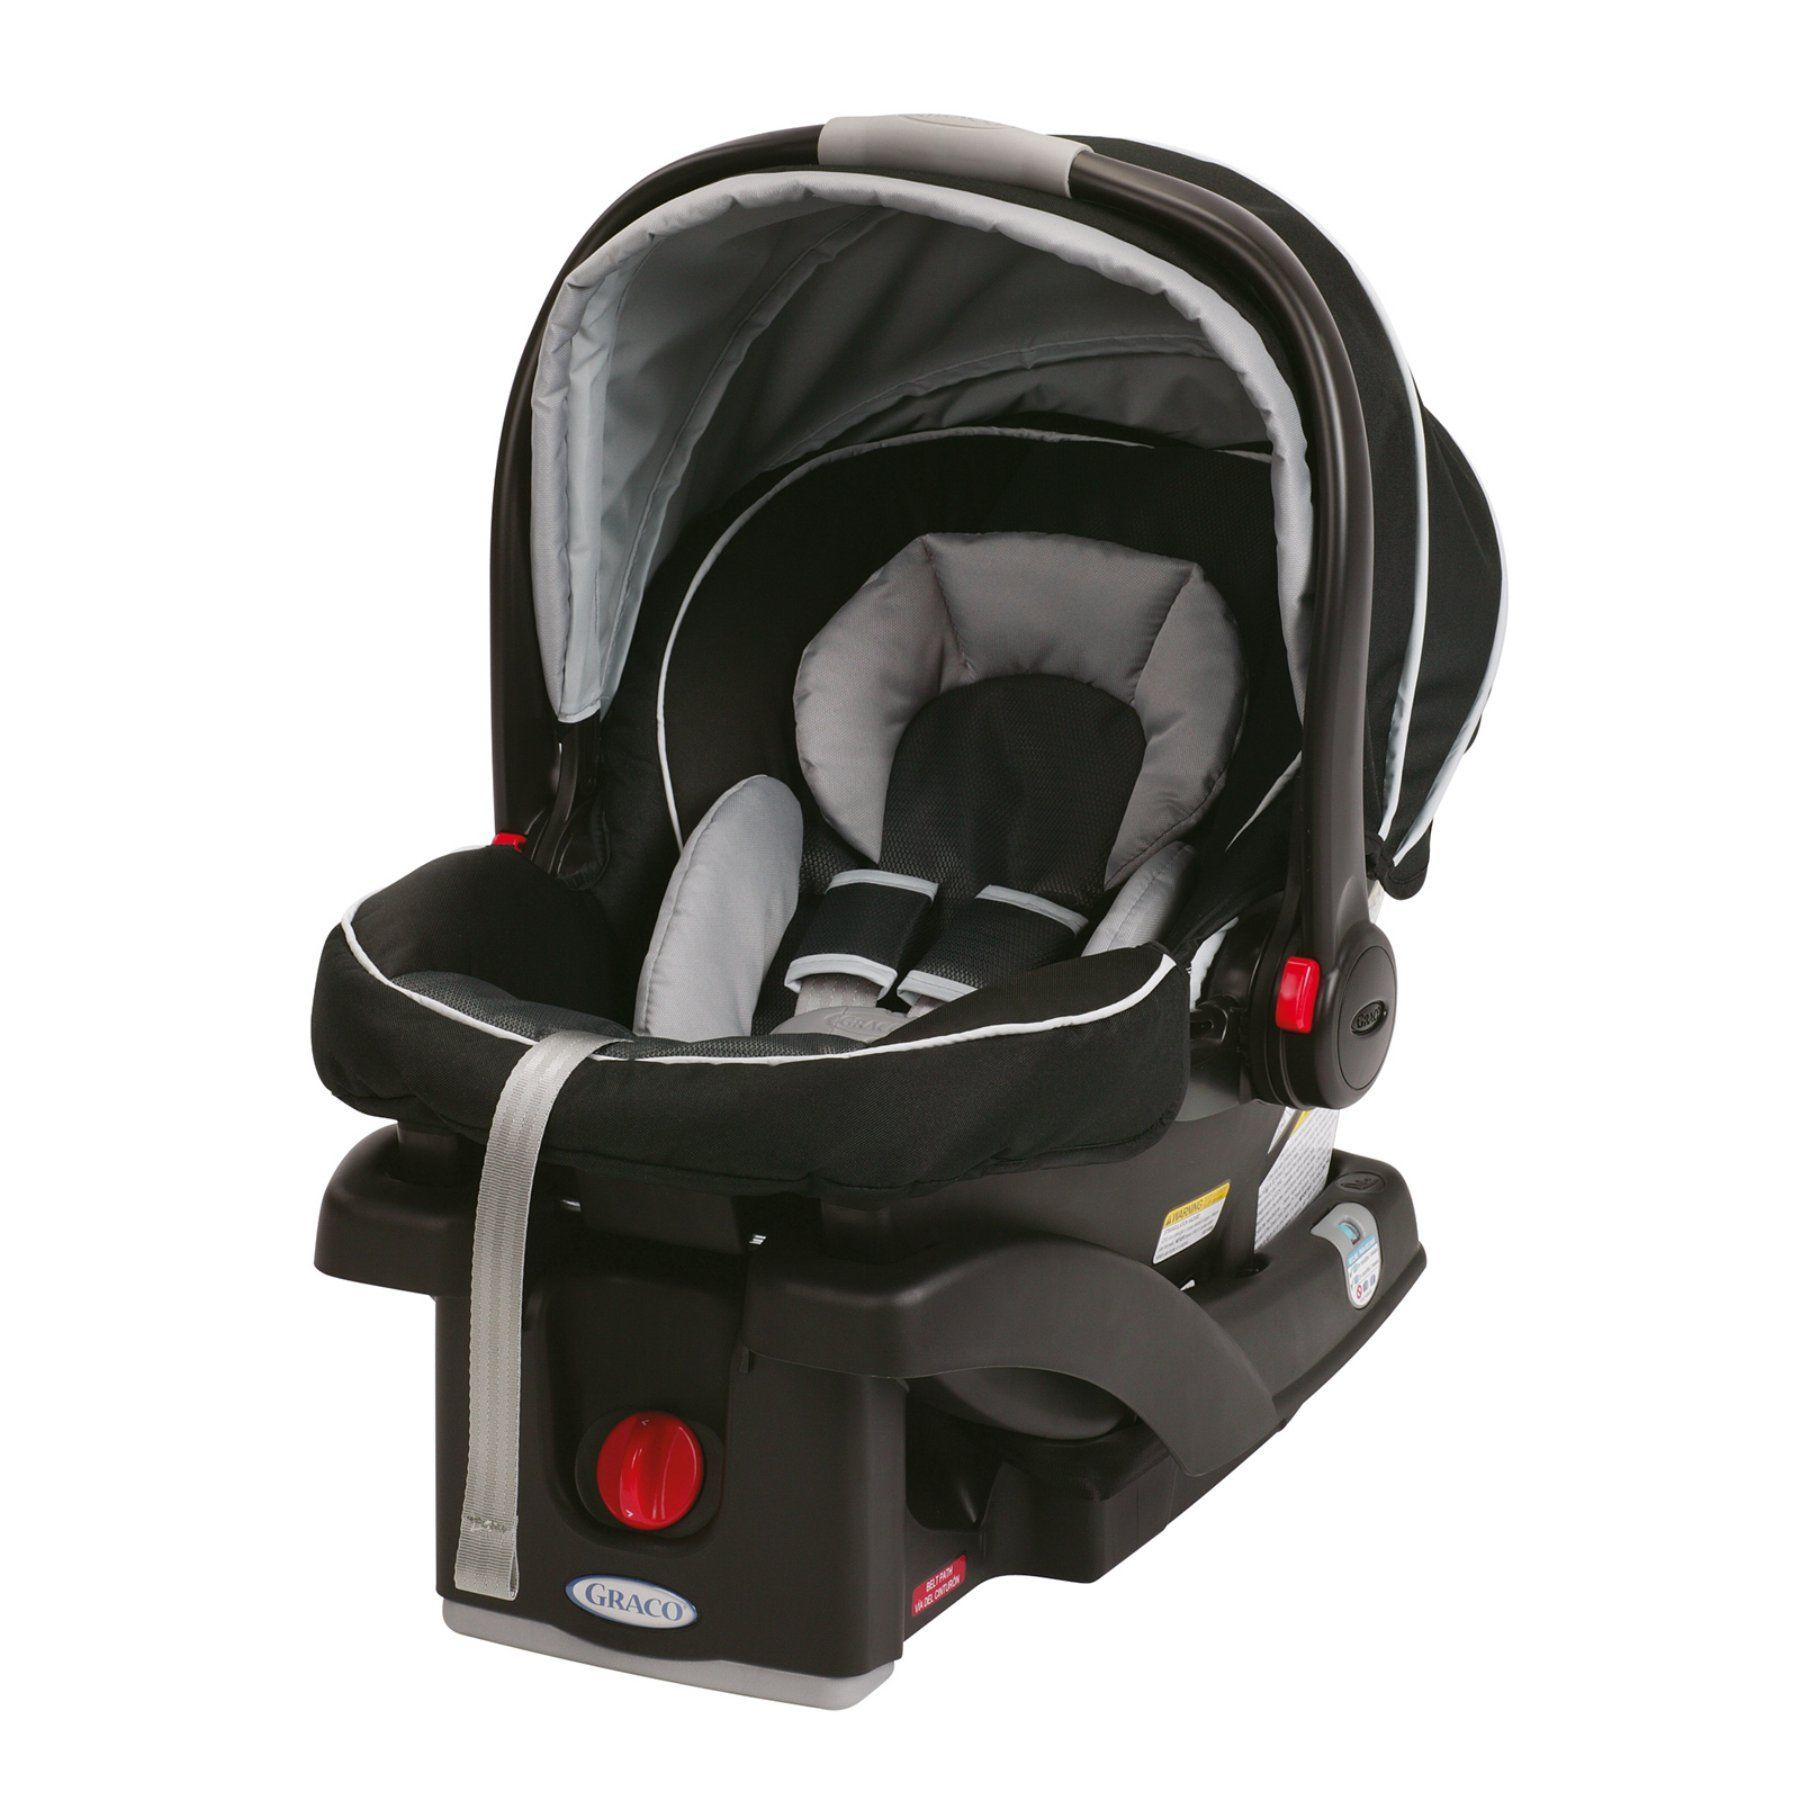 Graco Snugride Click Connect 35 Infant Car Seat Gotham